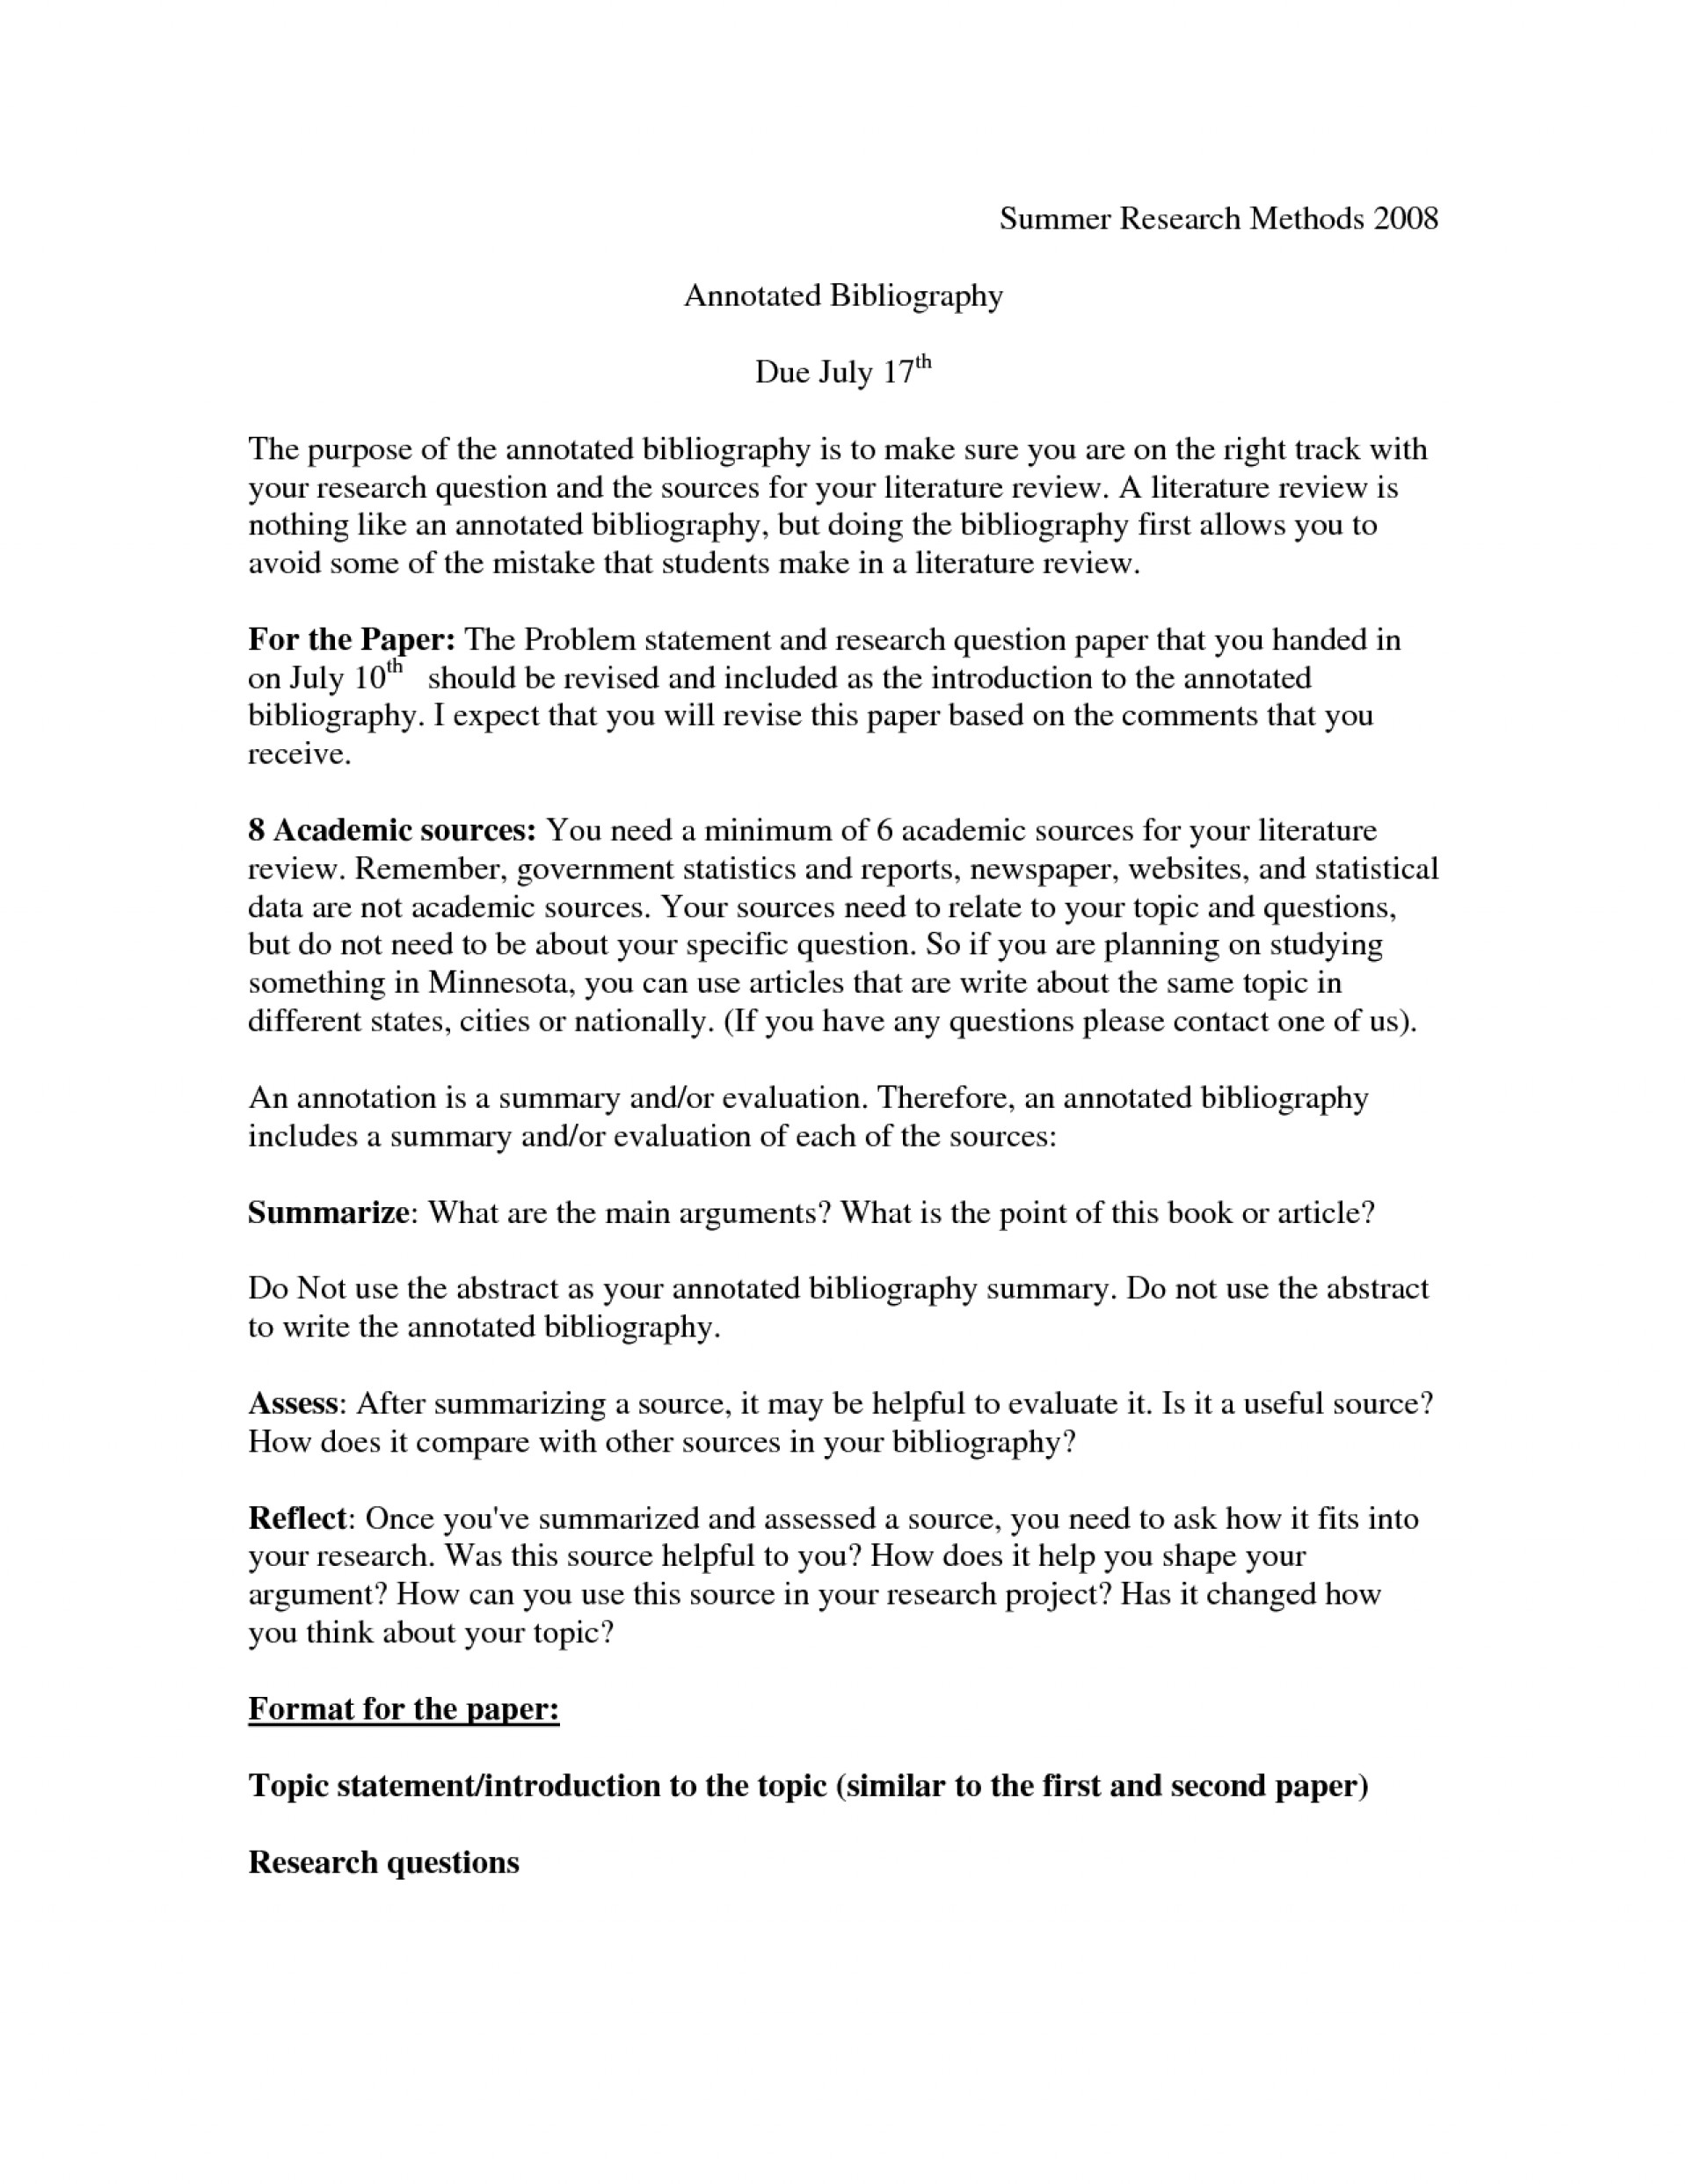 005 Annotated Bibliography Vs Research Paper Bunch Ideas Of Cute Sample Shocking Free Example Use An In A 1920